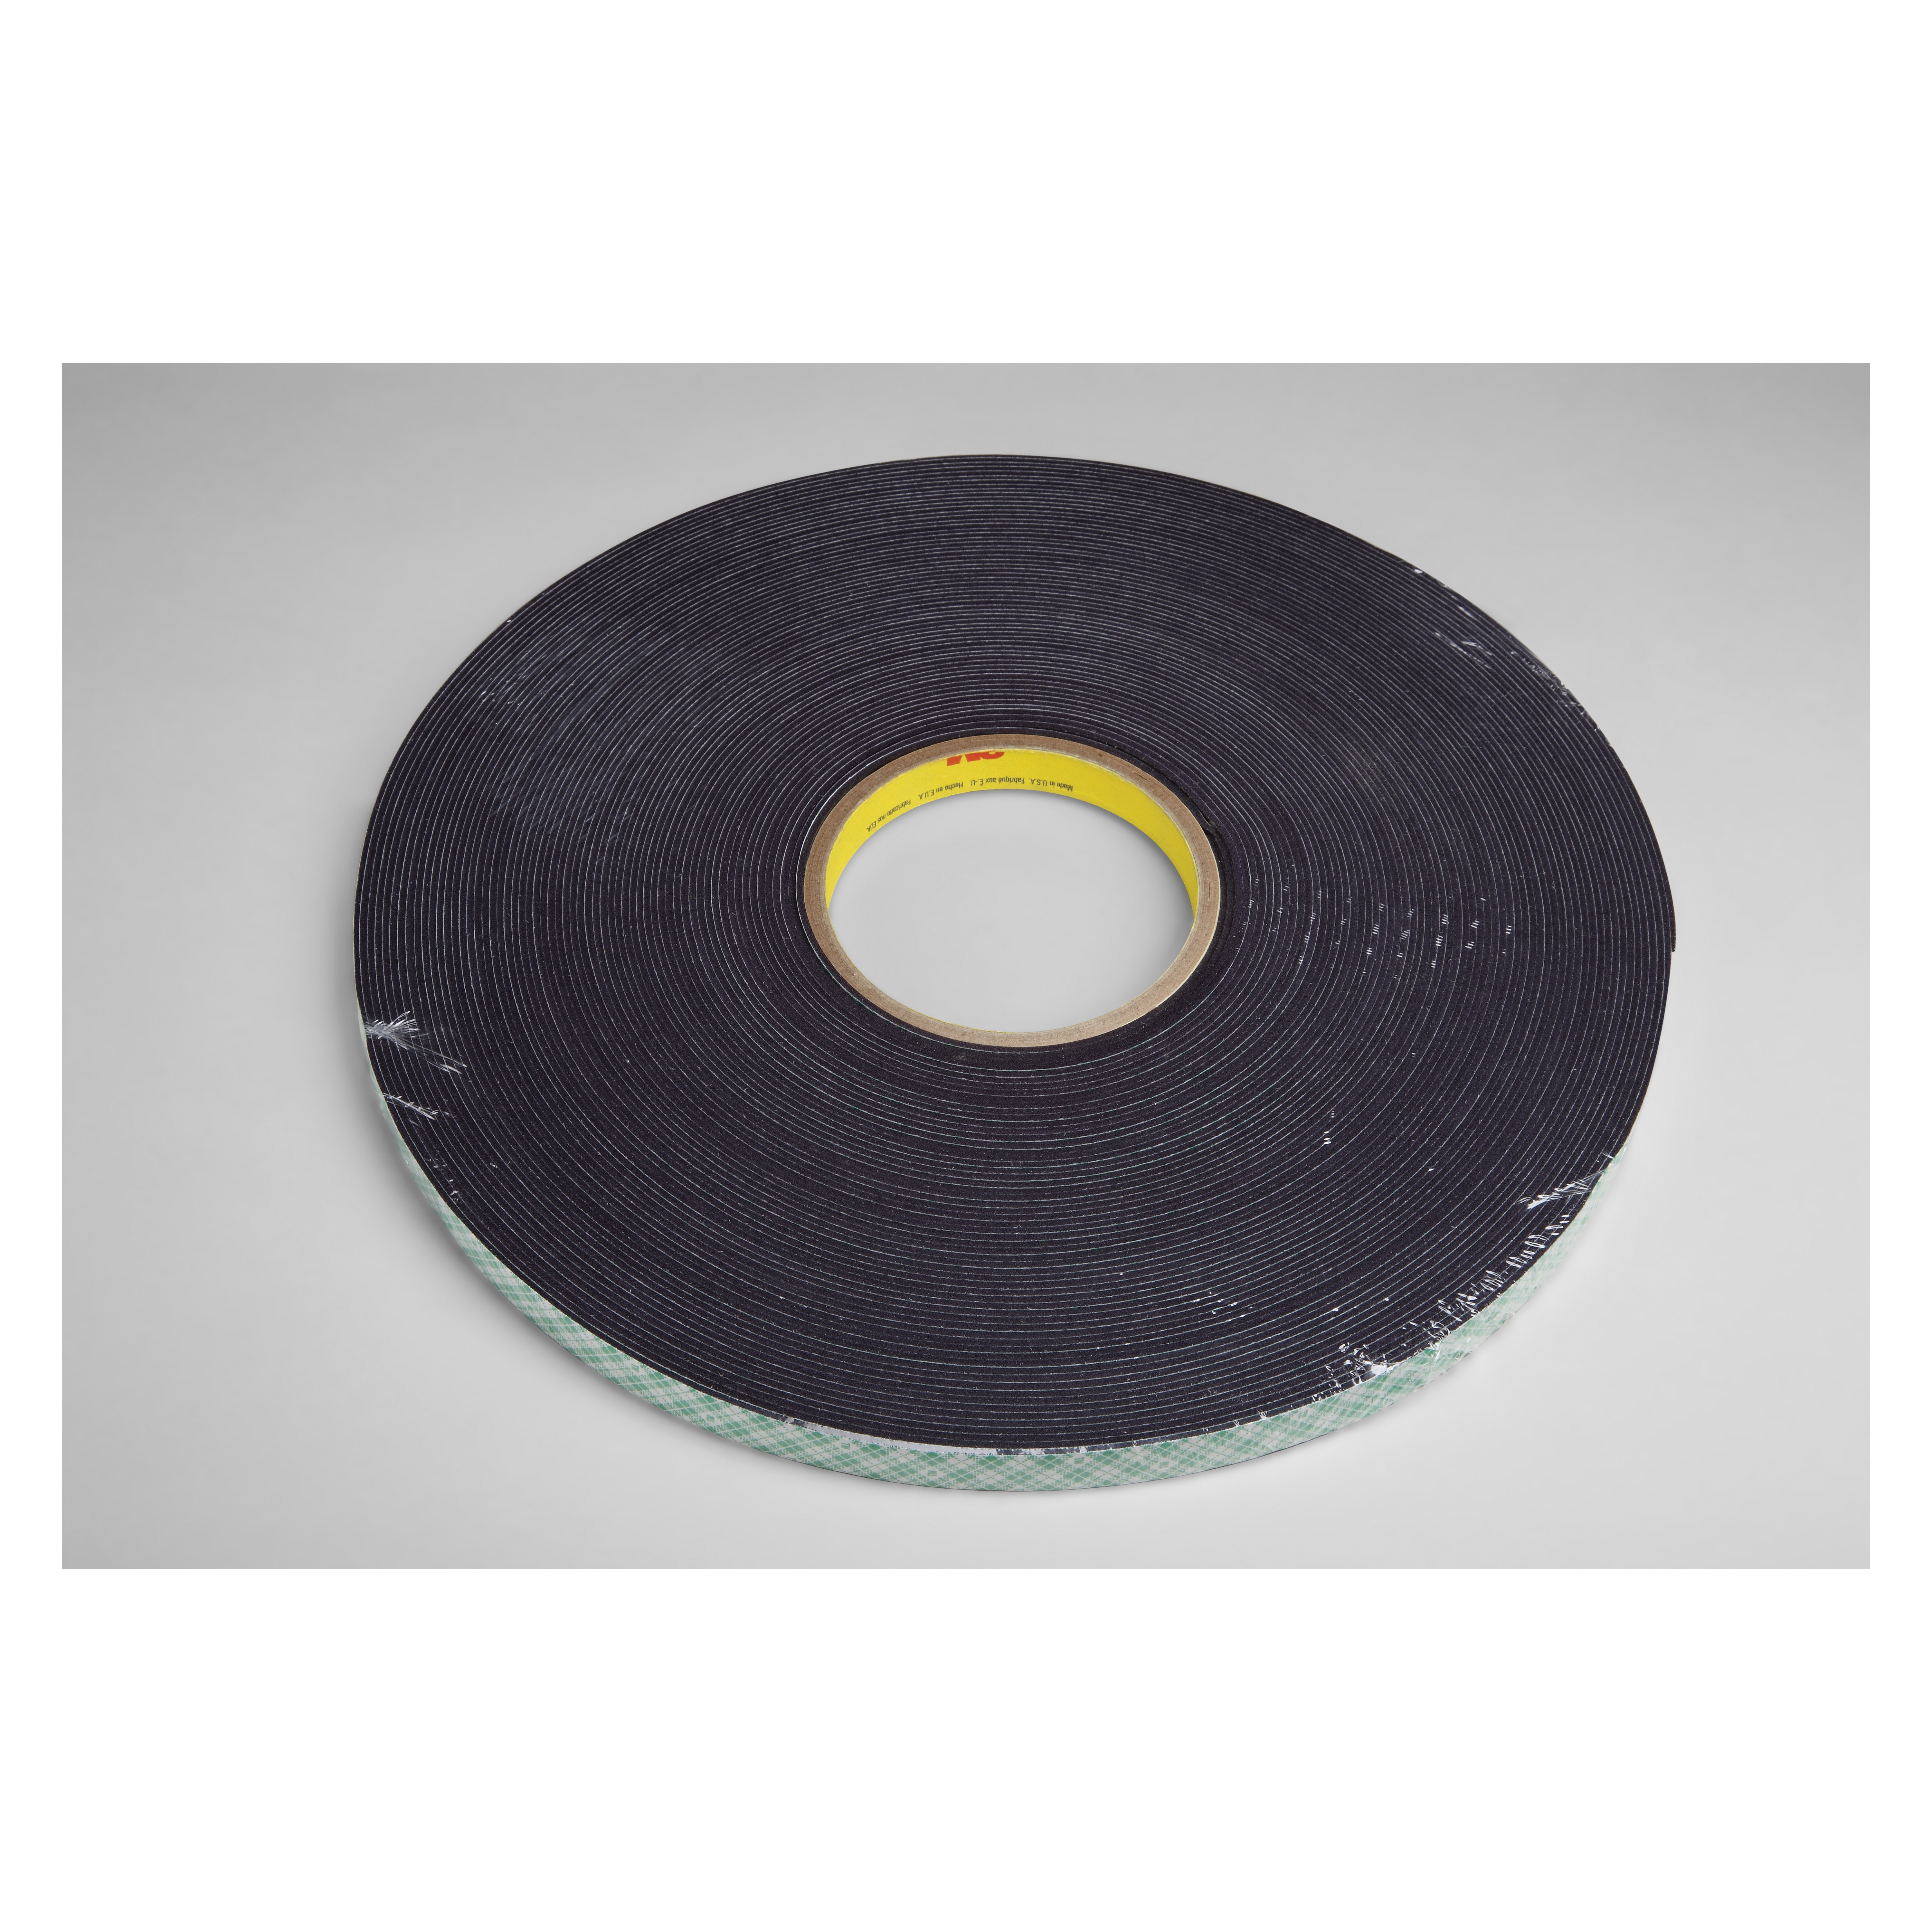 3M™ 021200-14668 Double Coated Tape, 36 yd L x 1/2 in W, 62 mil THK, Acrylic Adhesive, Urethane Foam Backing, Black